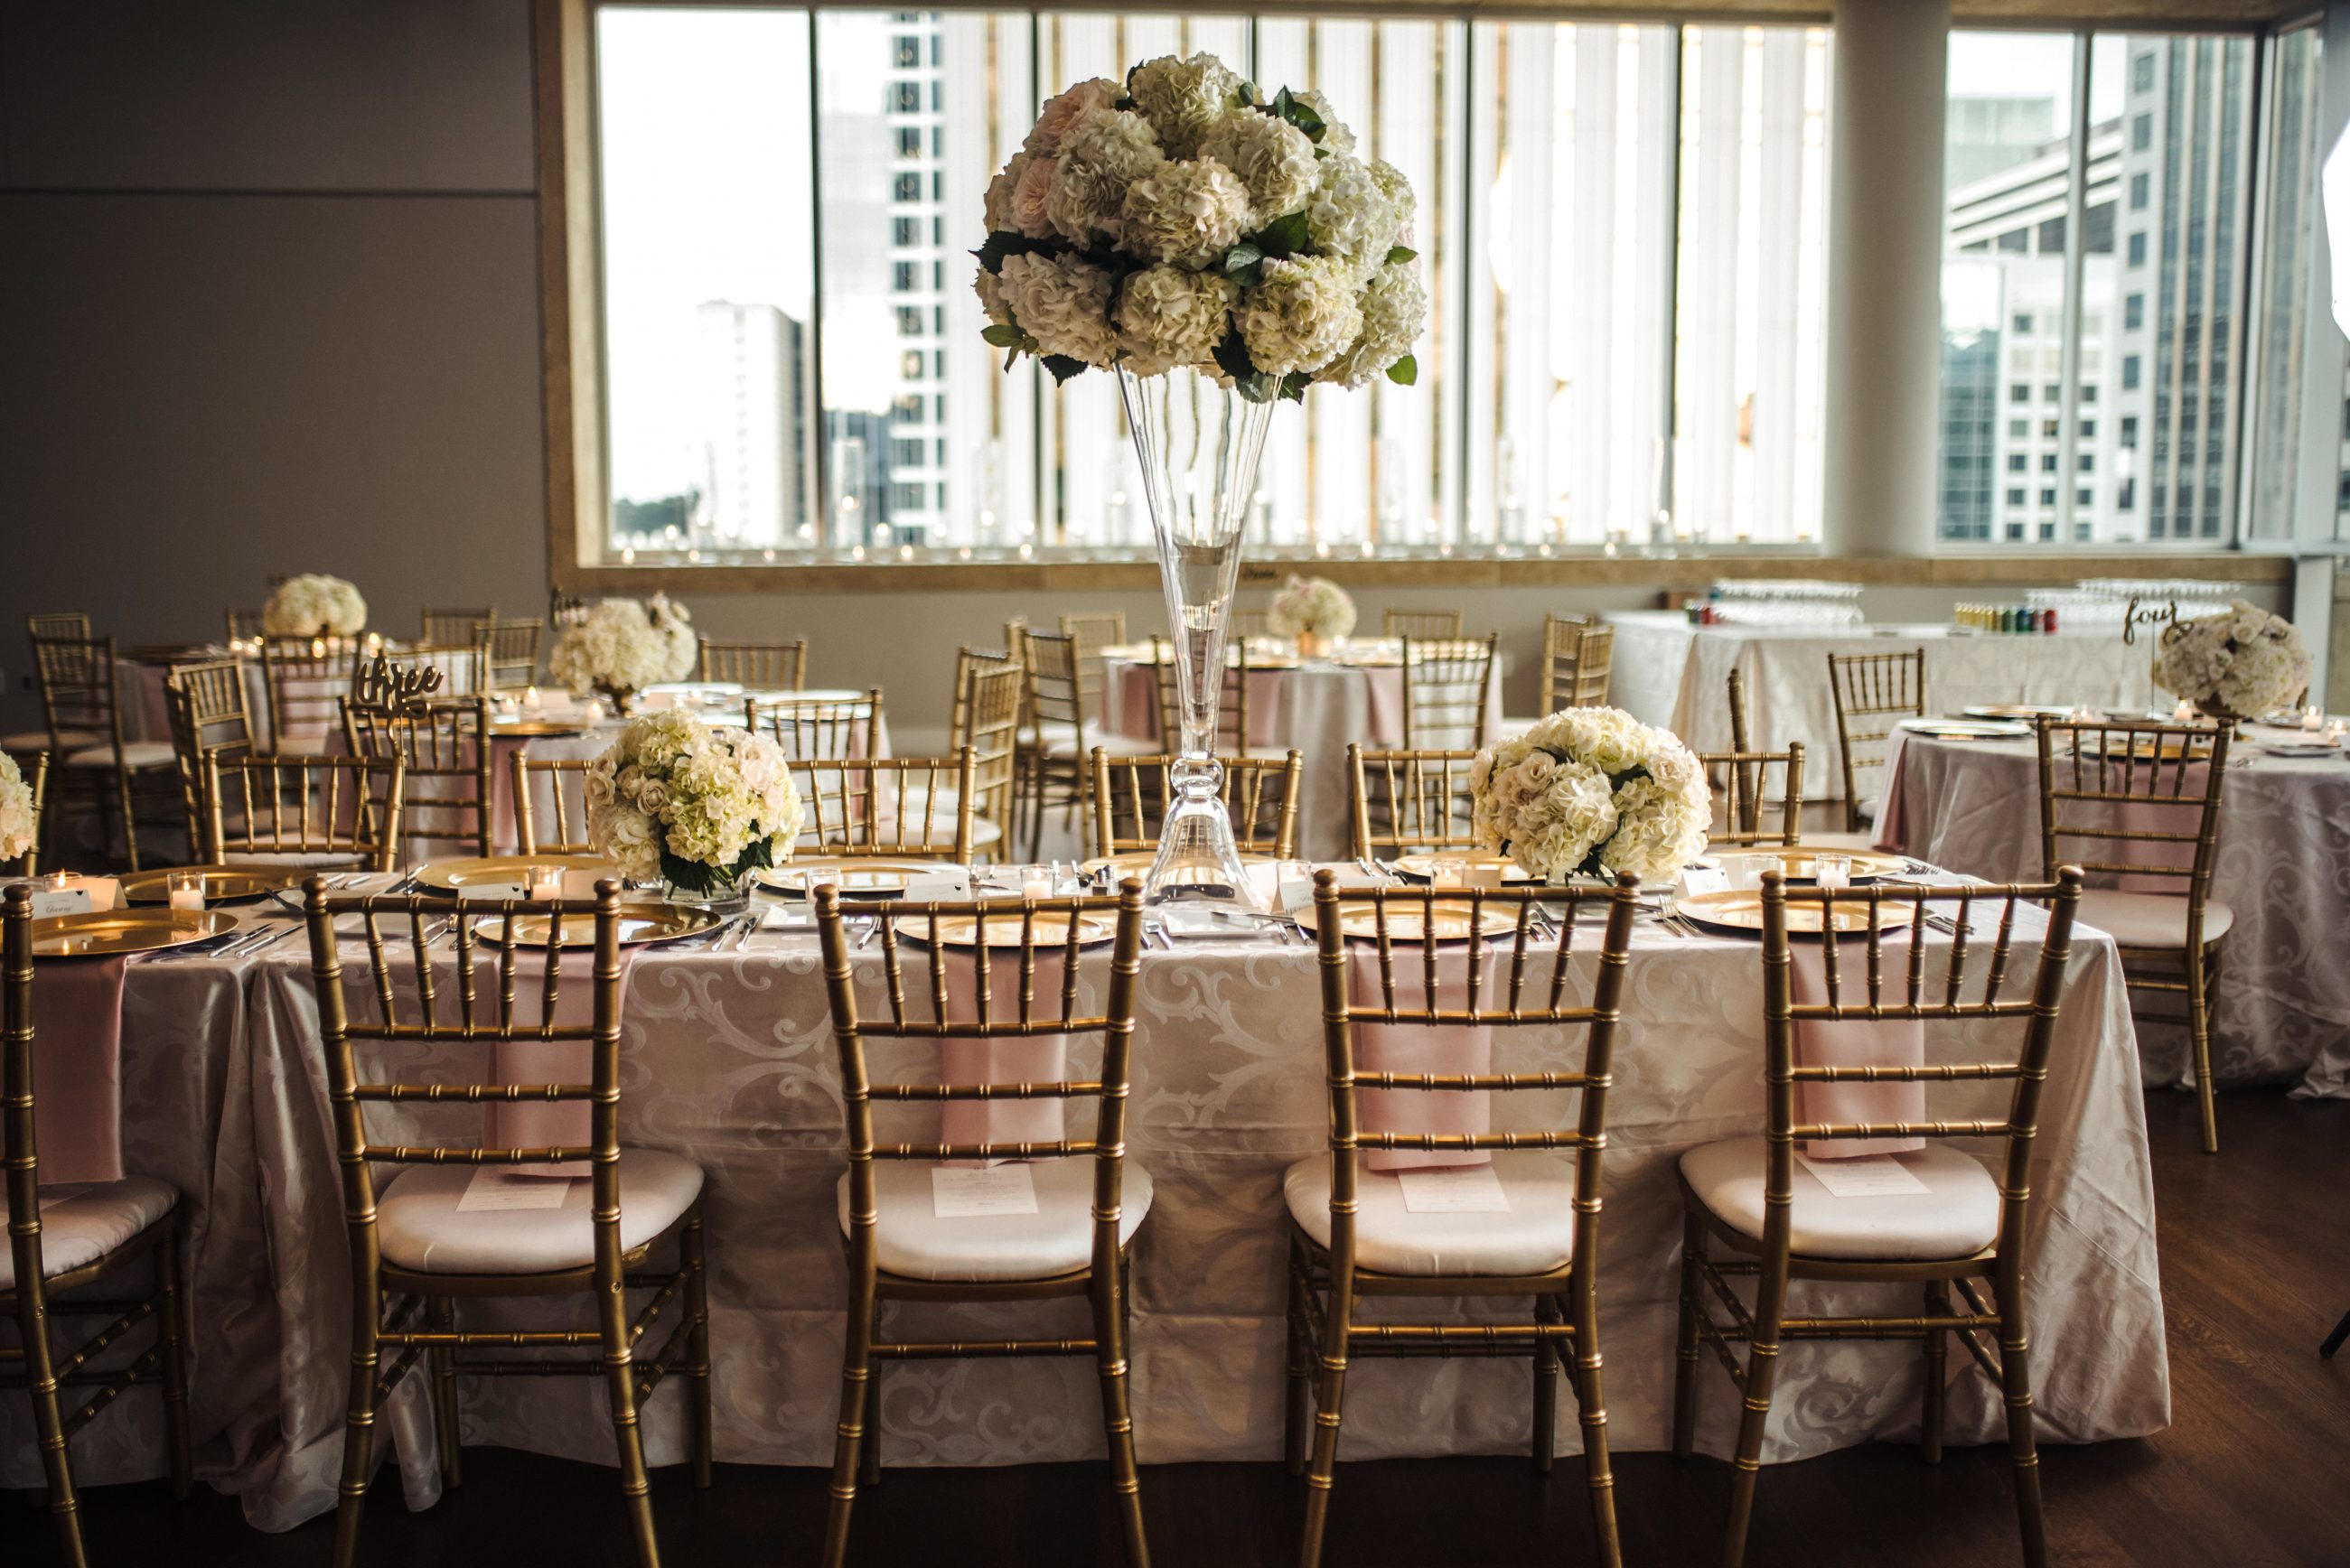 Charlotte wedding reception event tables with gold chiavari chairs rented from Party Reflections